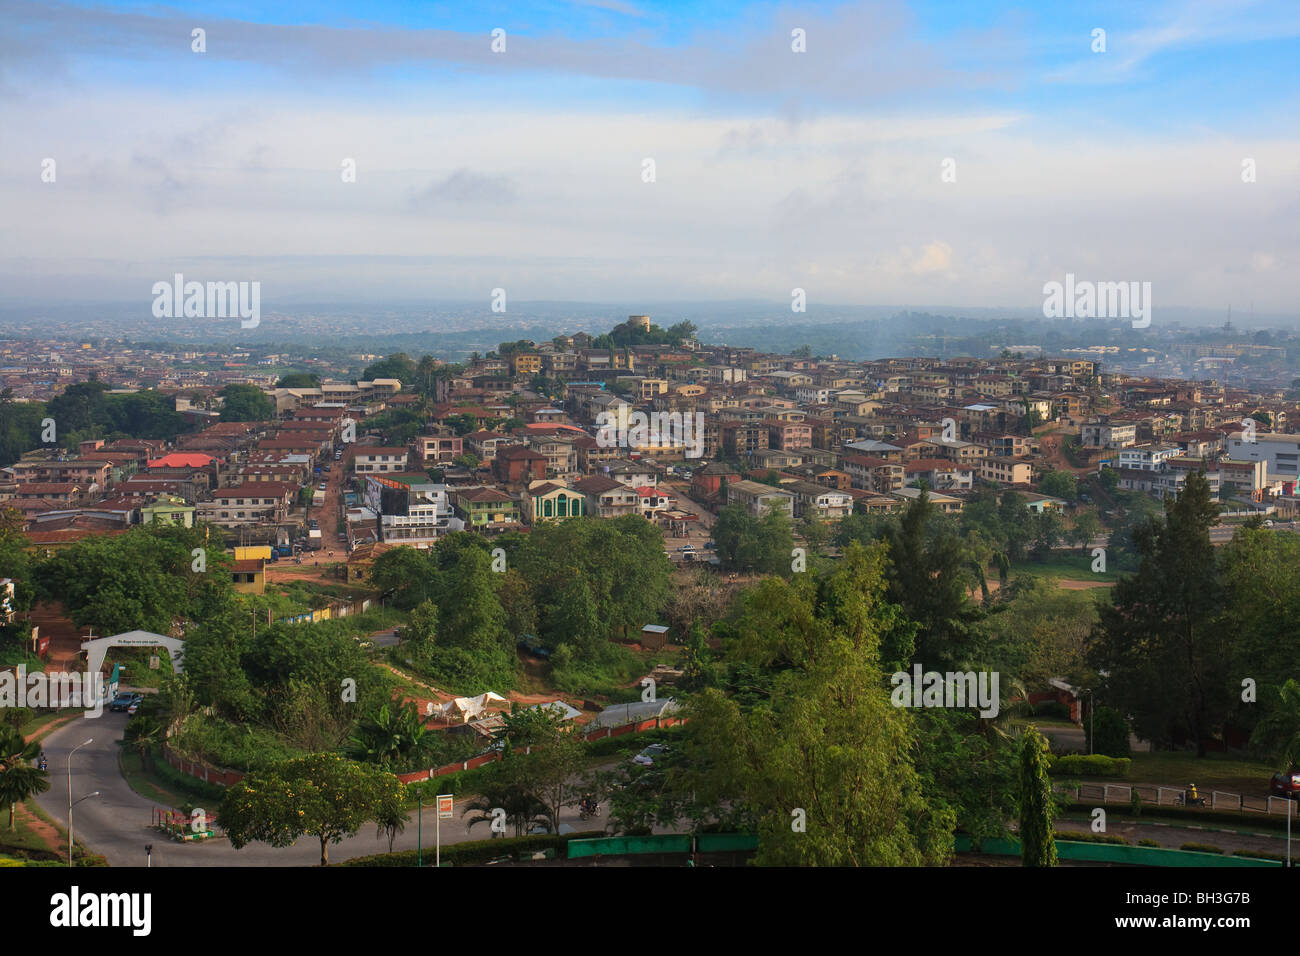 Africa Cityscape Ibadan Nigeria Streets Towns - Stock Image